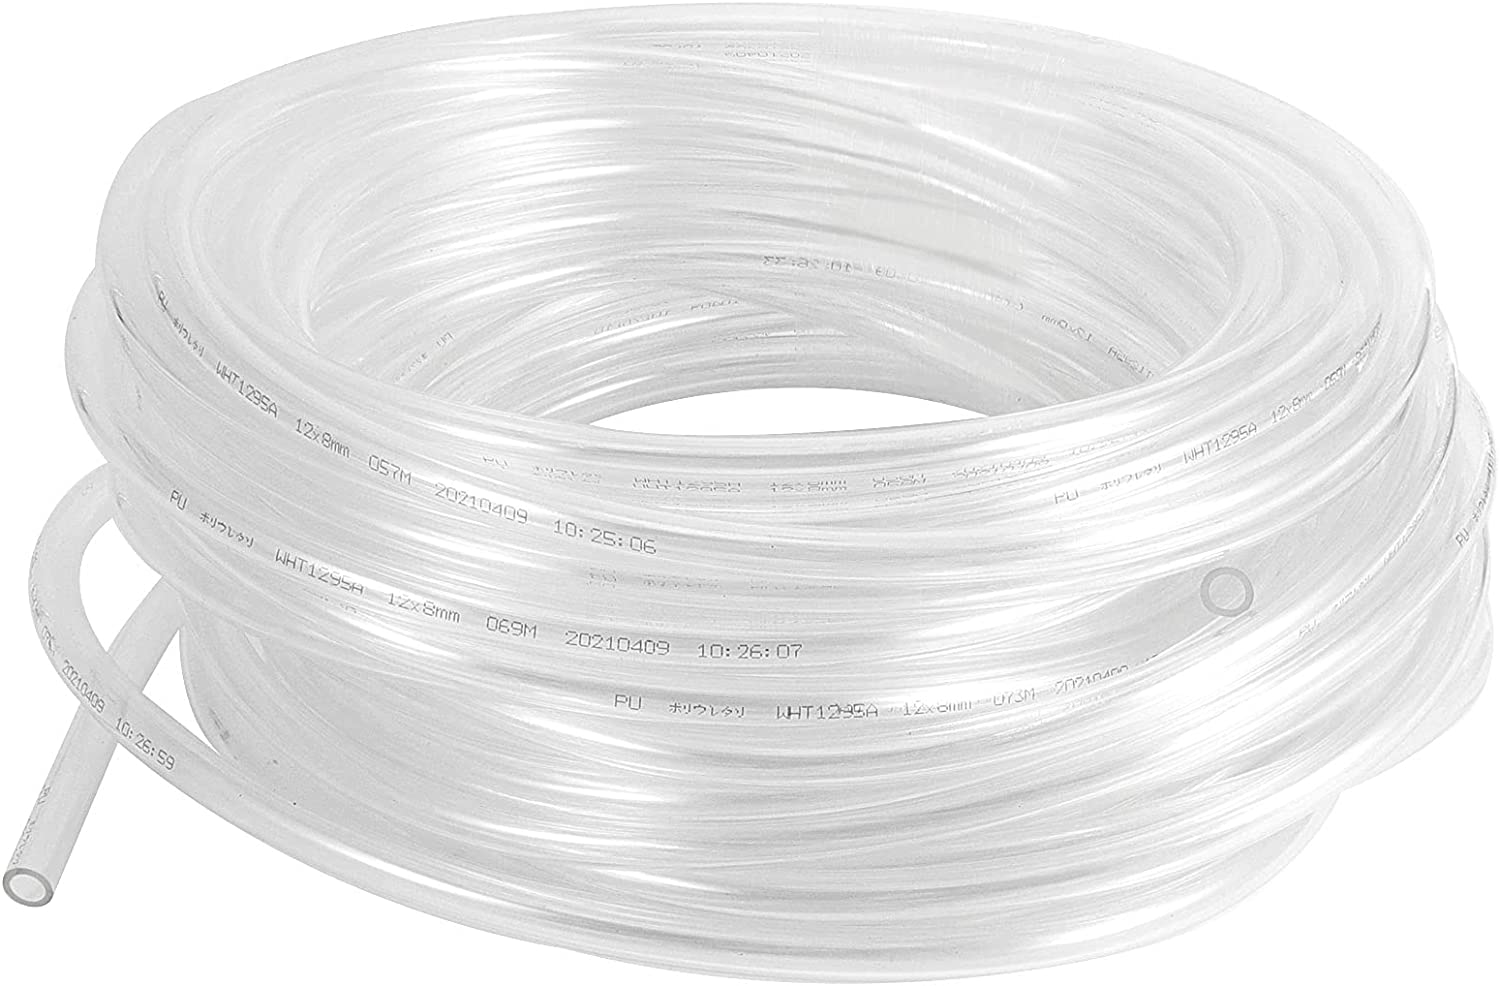 HAKZEON 115 Feet 1/2 Inch ID 5/8 Inch OD Clear Vinyl Tubing, Food Grade PVC Hose Universal Flexible Plastic Tubing for Medical, Industry, Agriculture, Fishery, Wine Making, Household